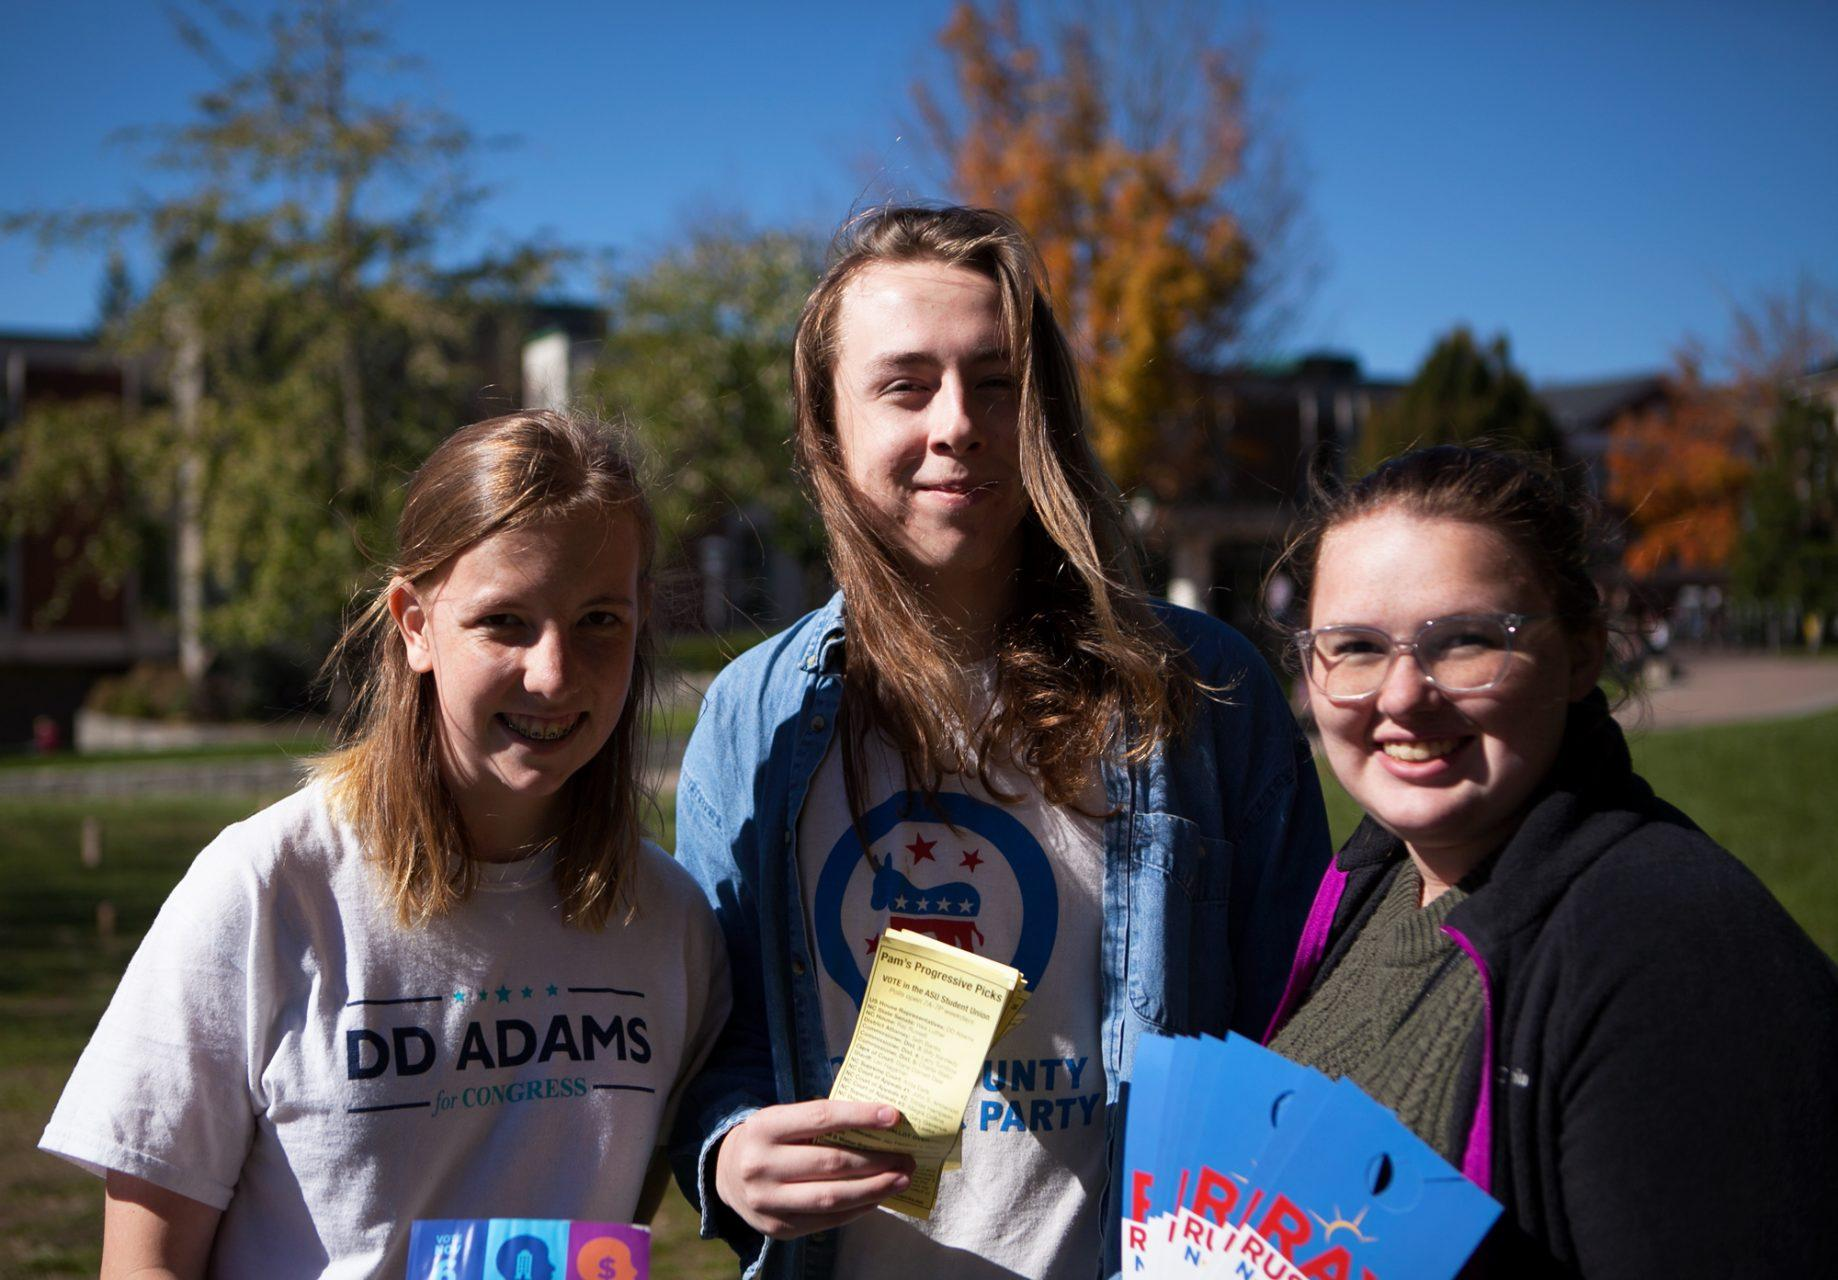 Interns get hands-on political experience by canvassing, empowering student voting